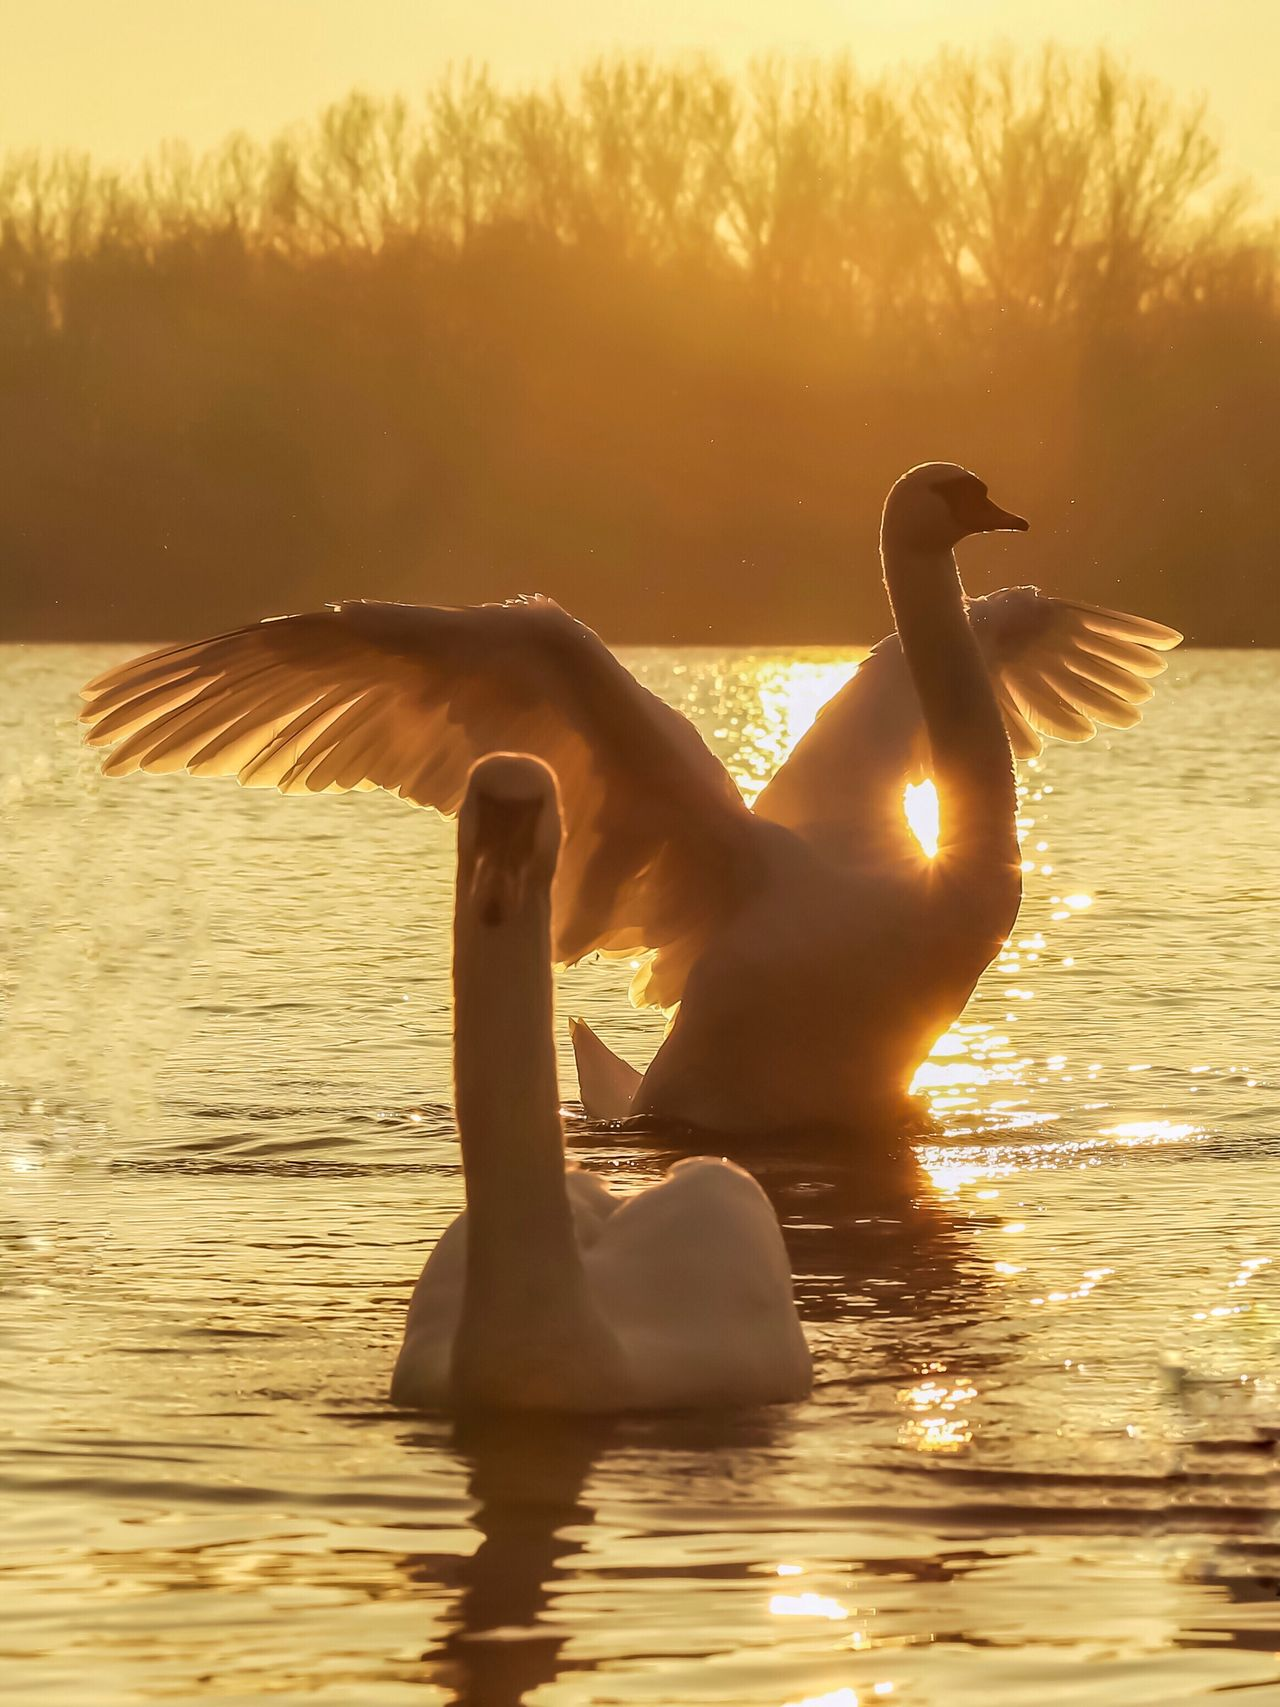 """Evening mood"" https://www.facebook.com/mh.photography.de/ Swan Swans On The Lake Schwan  Scenics Sunset Sonnenuntergang Evening Evening Sky Evening Mood Animals Tiere Bird Birds Vogel Michael Hruschka Wildlife No People Beauty In Nature Nature Moments Natur Animals In The Wild Animal Themes Sky Colors"